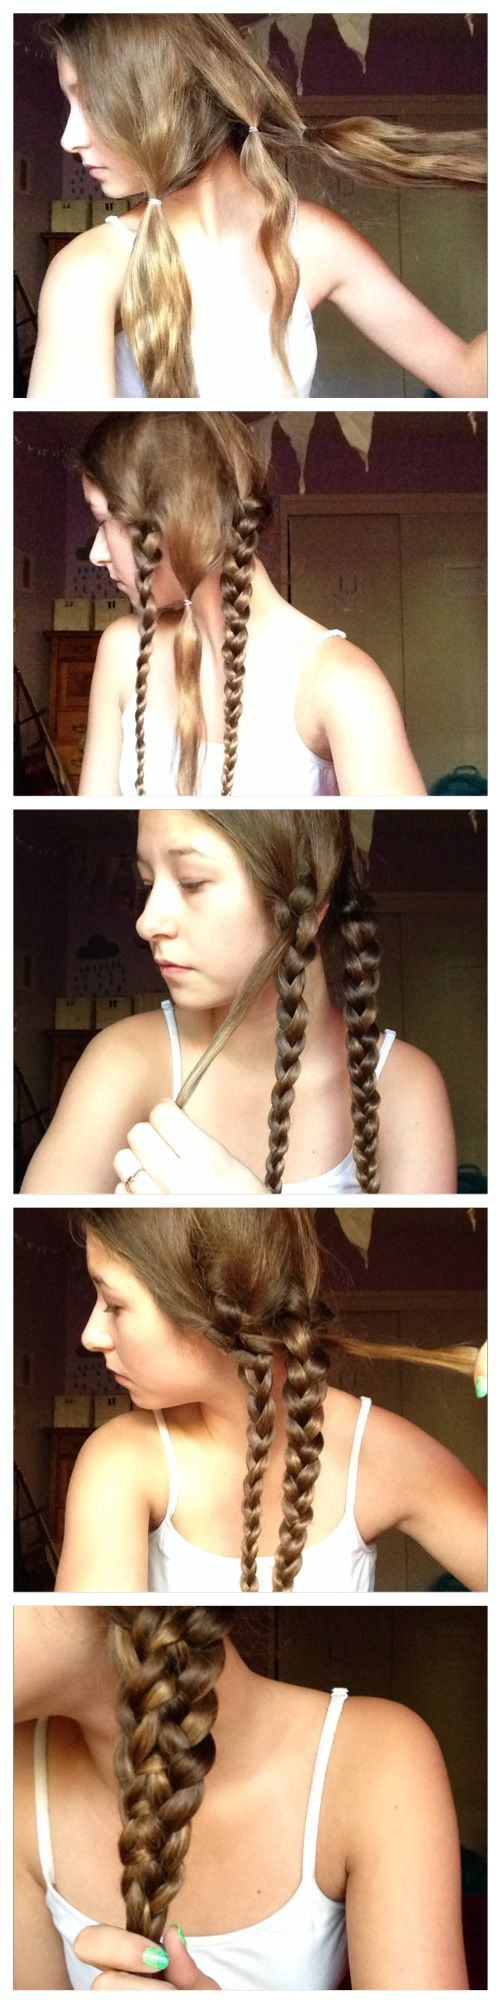 Lace-up braid tutorial- 1 separate your hair into 2 main parts 2- take a small part from the first part 3- braid the two main parts leaving a little part in the middle 4- sew the middle part through the two main braids!